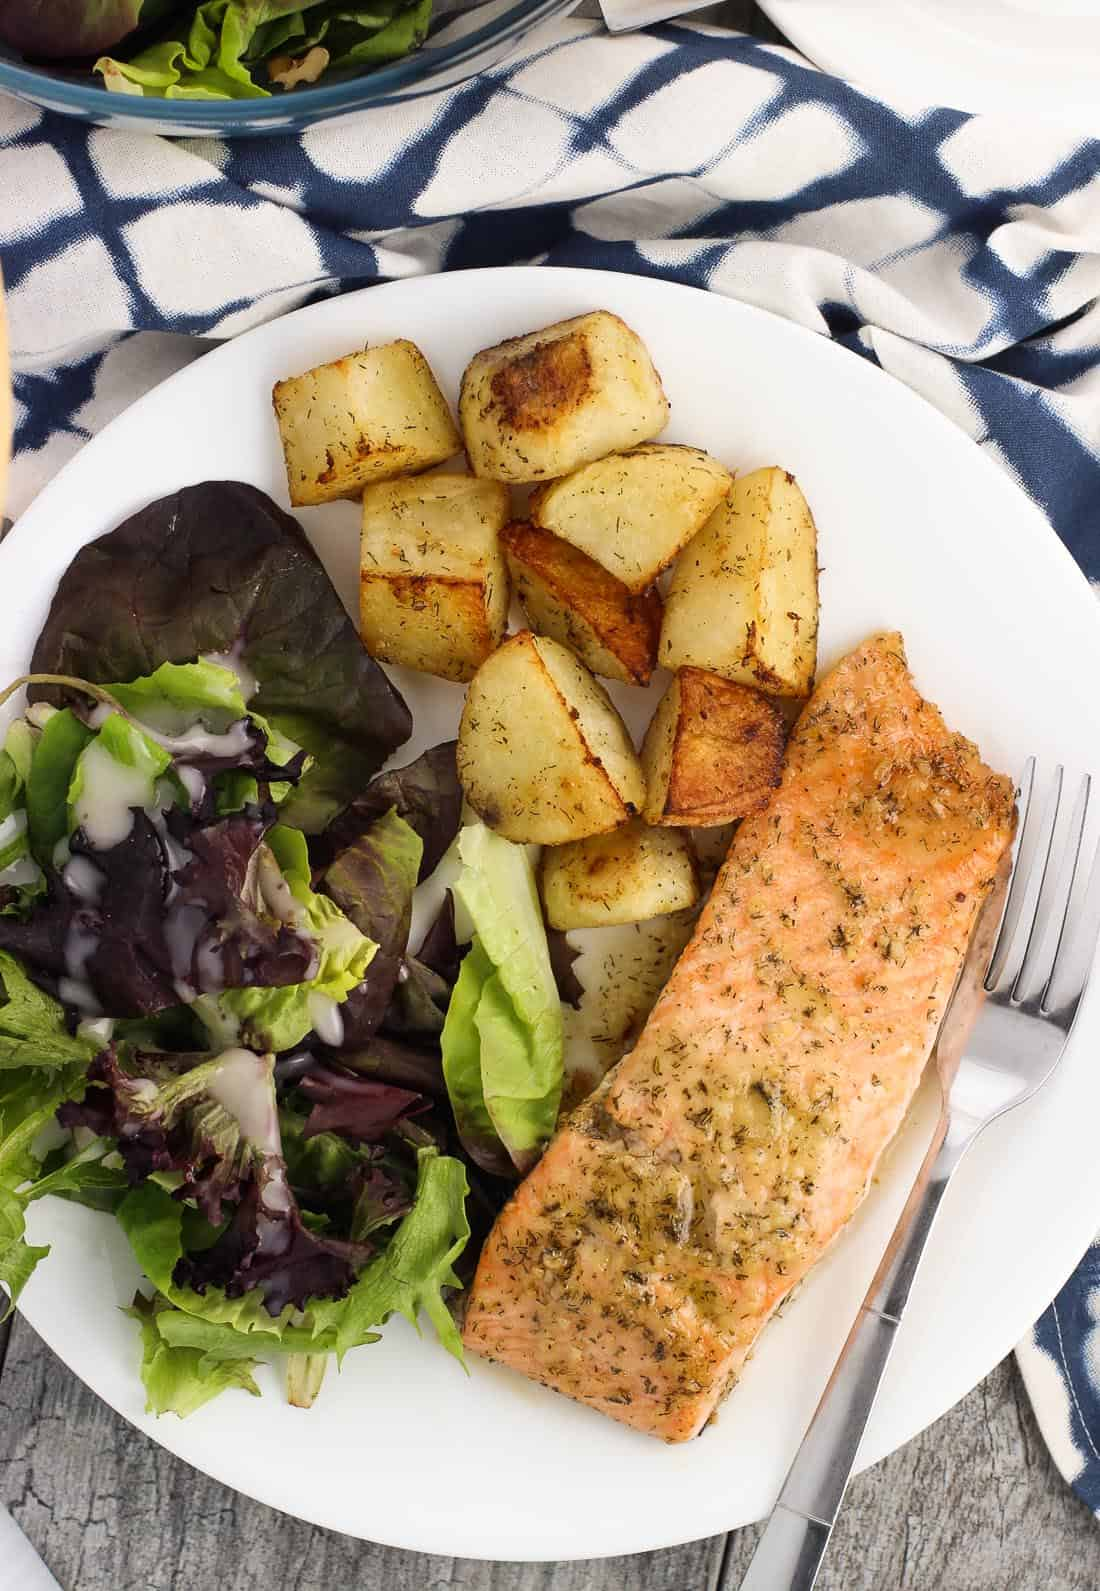 An overhead view of a salmon fillet, potato wedges, and a side salad on a dinner plate with a fork